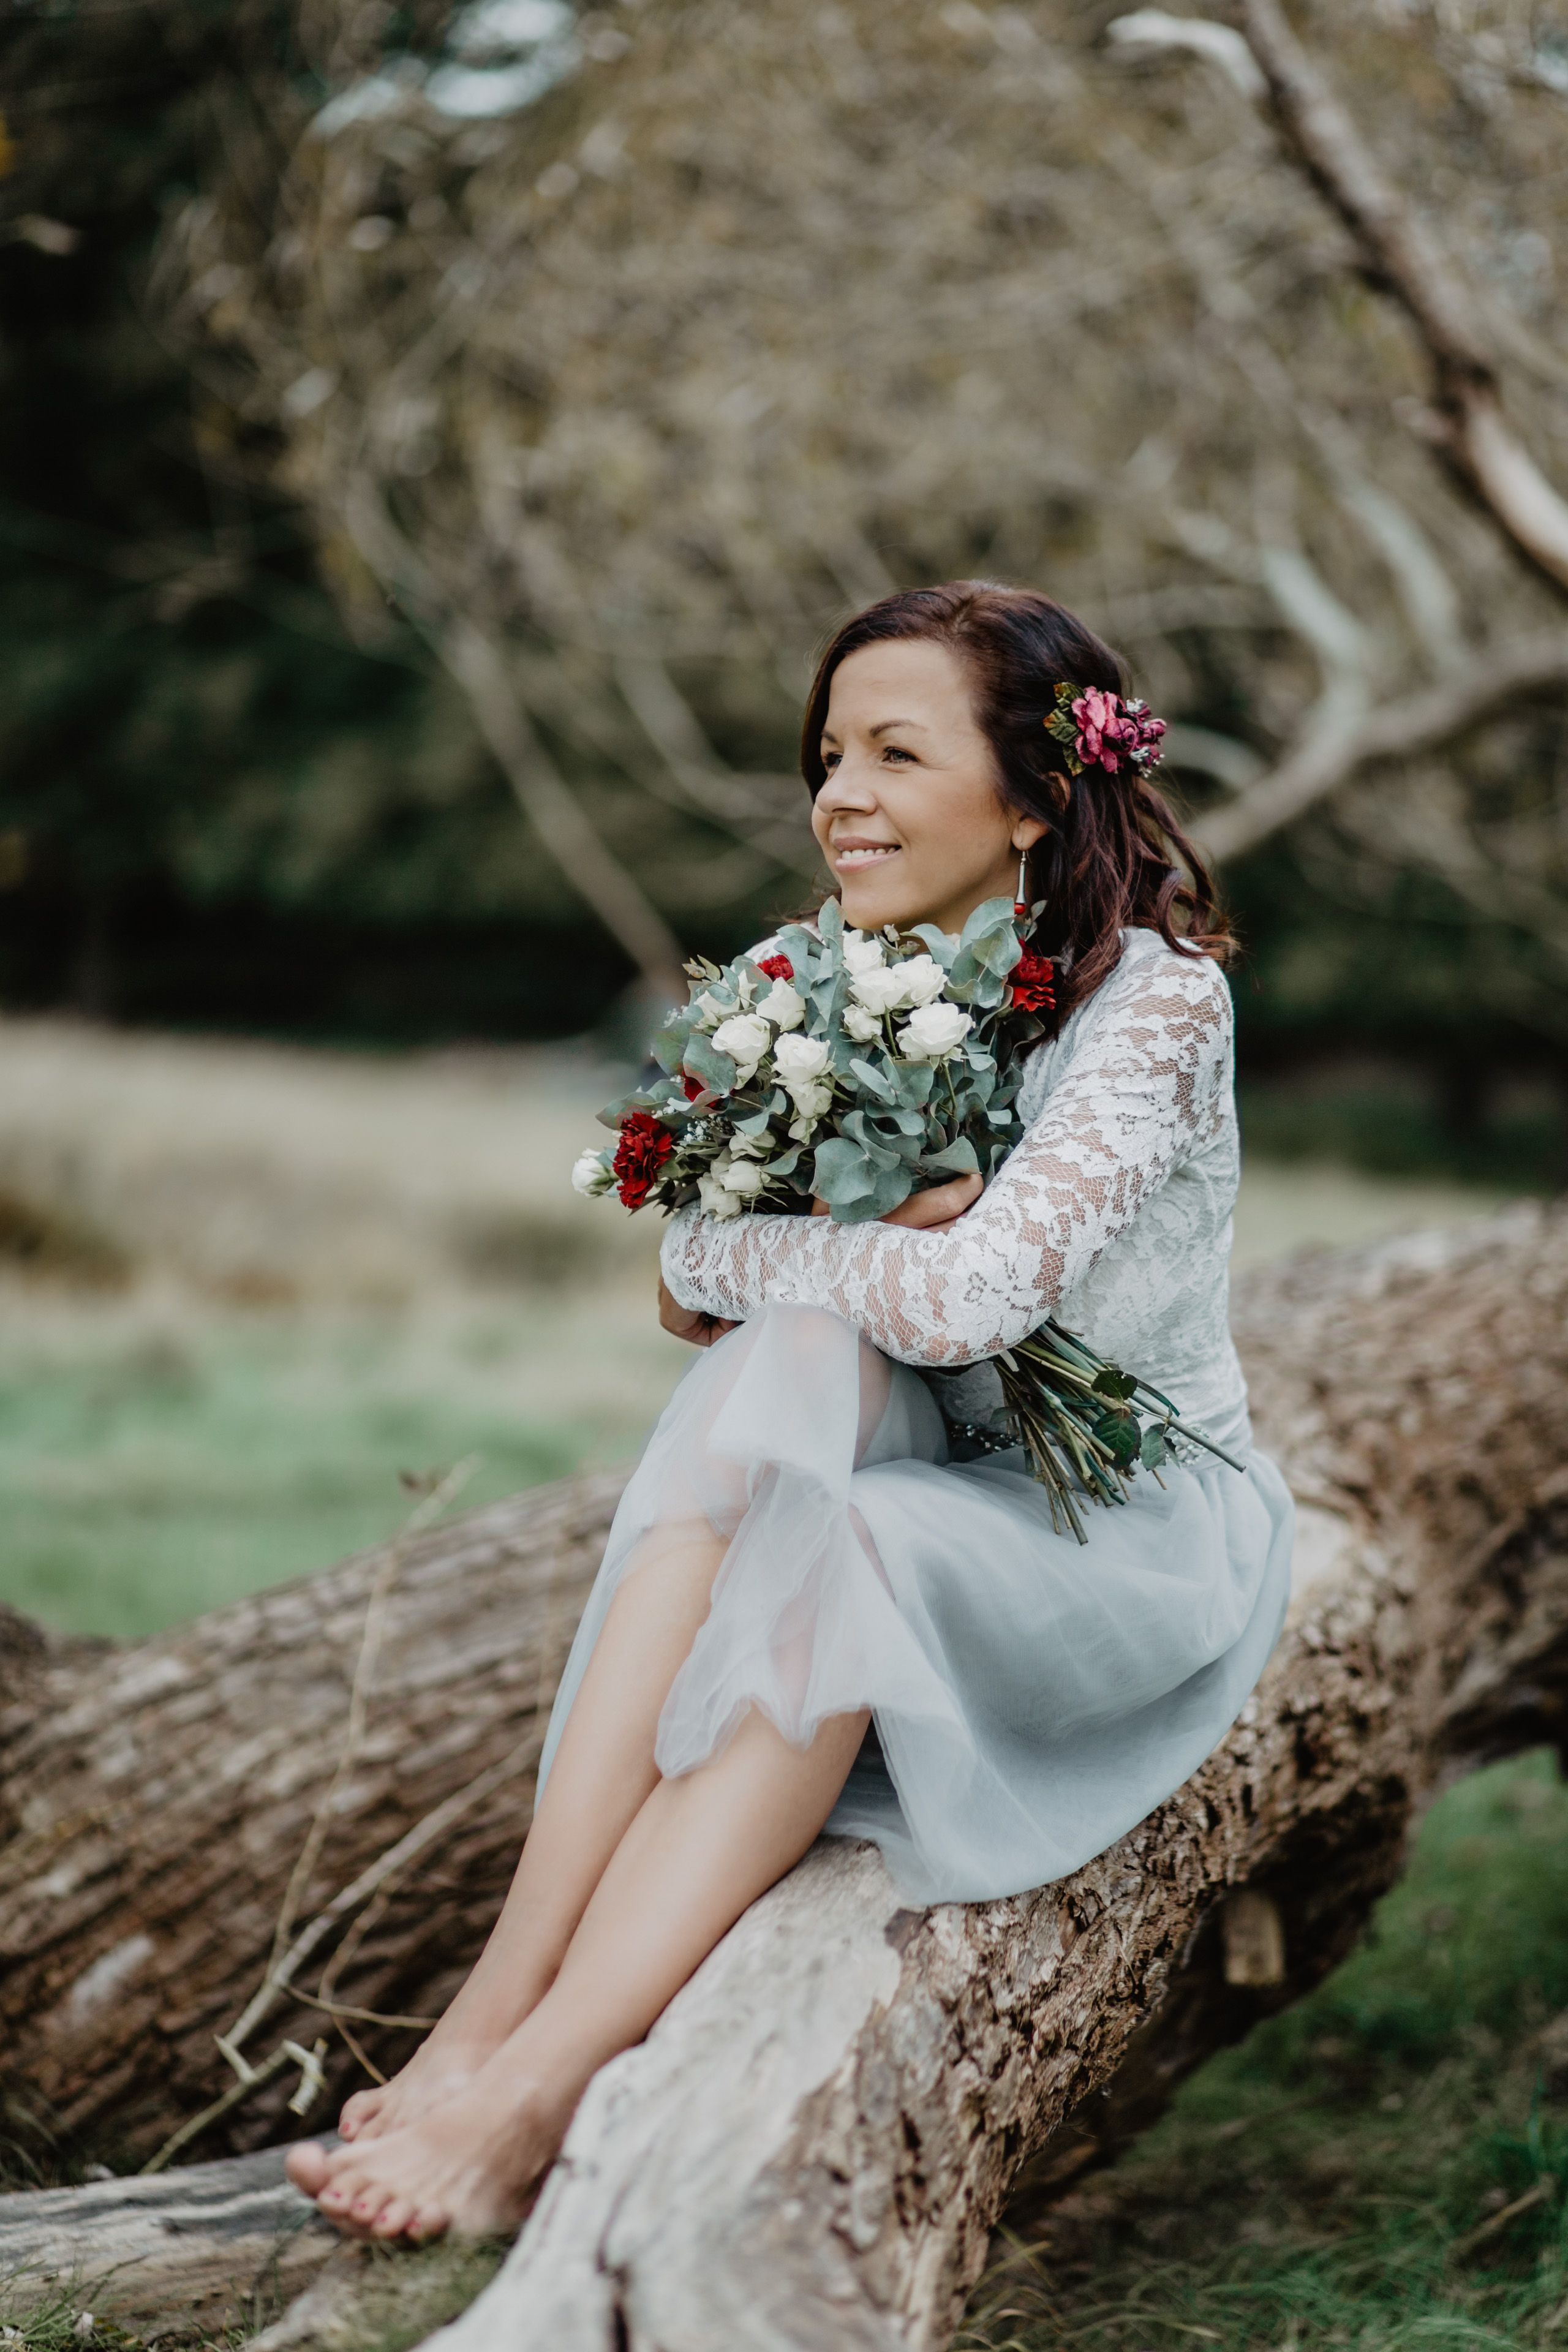 Beautiful outdoors elopement in richmond london england loved the